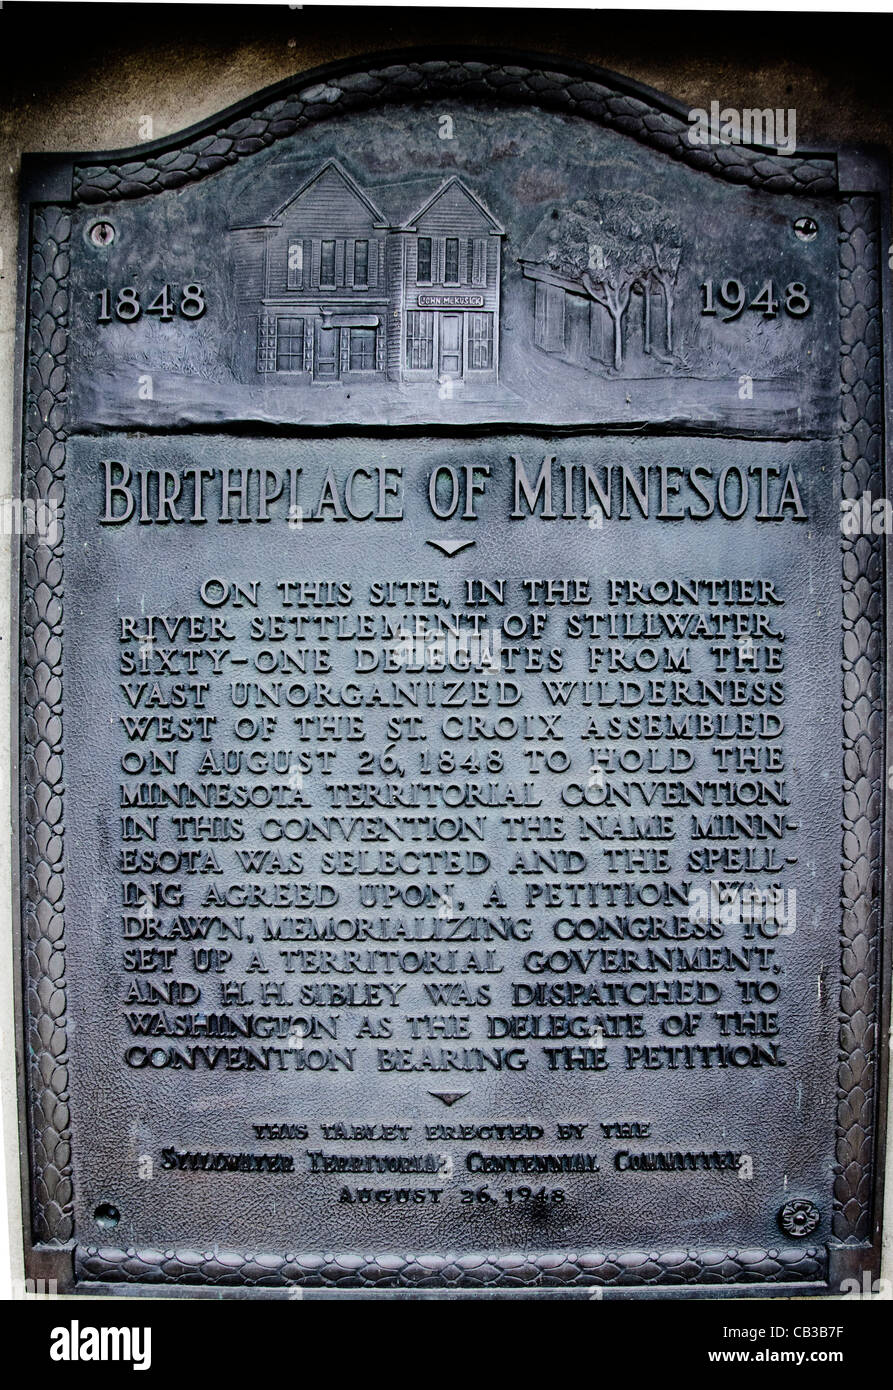 Plaque commemorating the town of Stillwater as the oldest town (1848) in Minnesota. - Stock Image